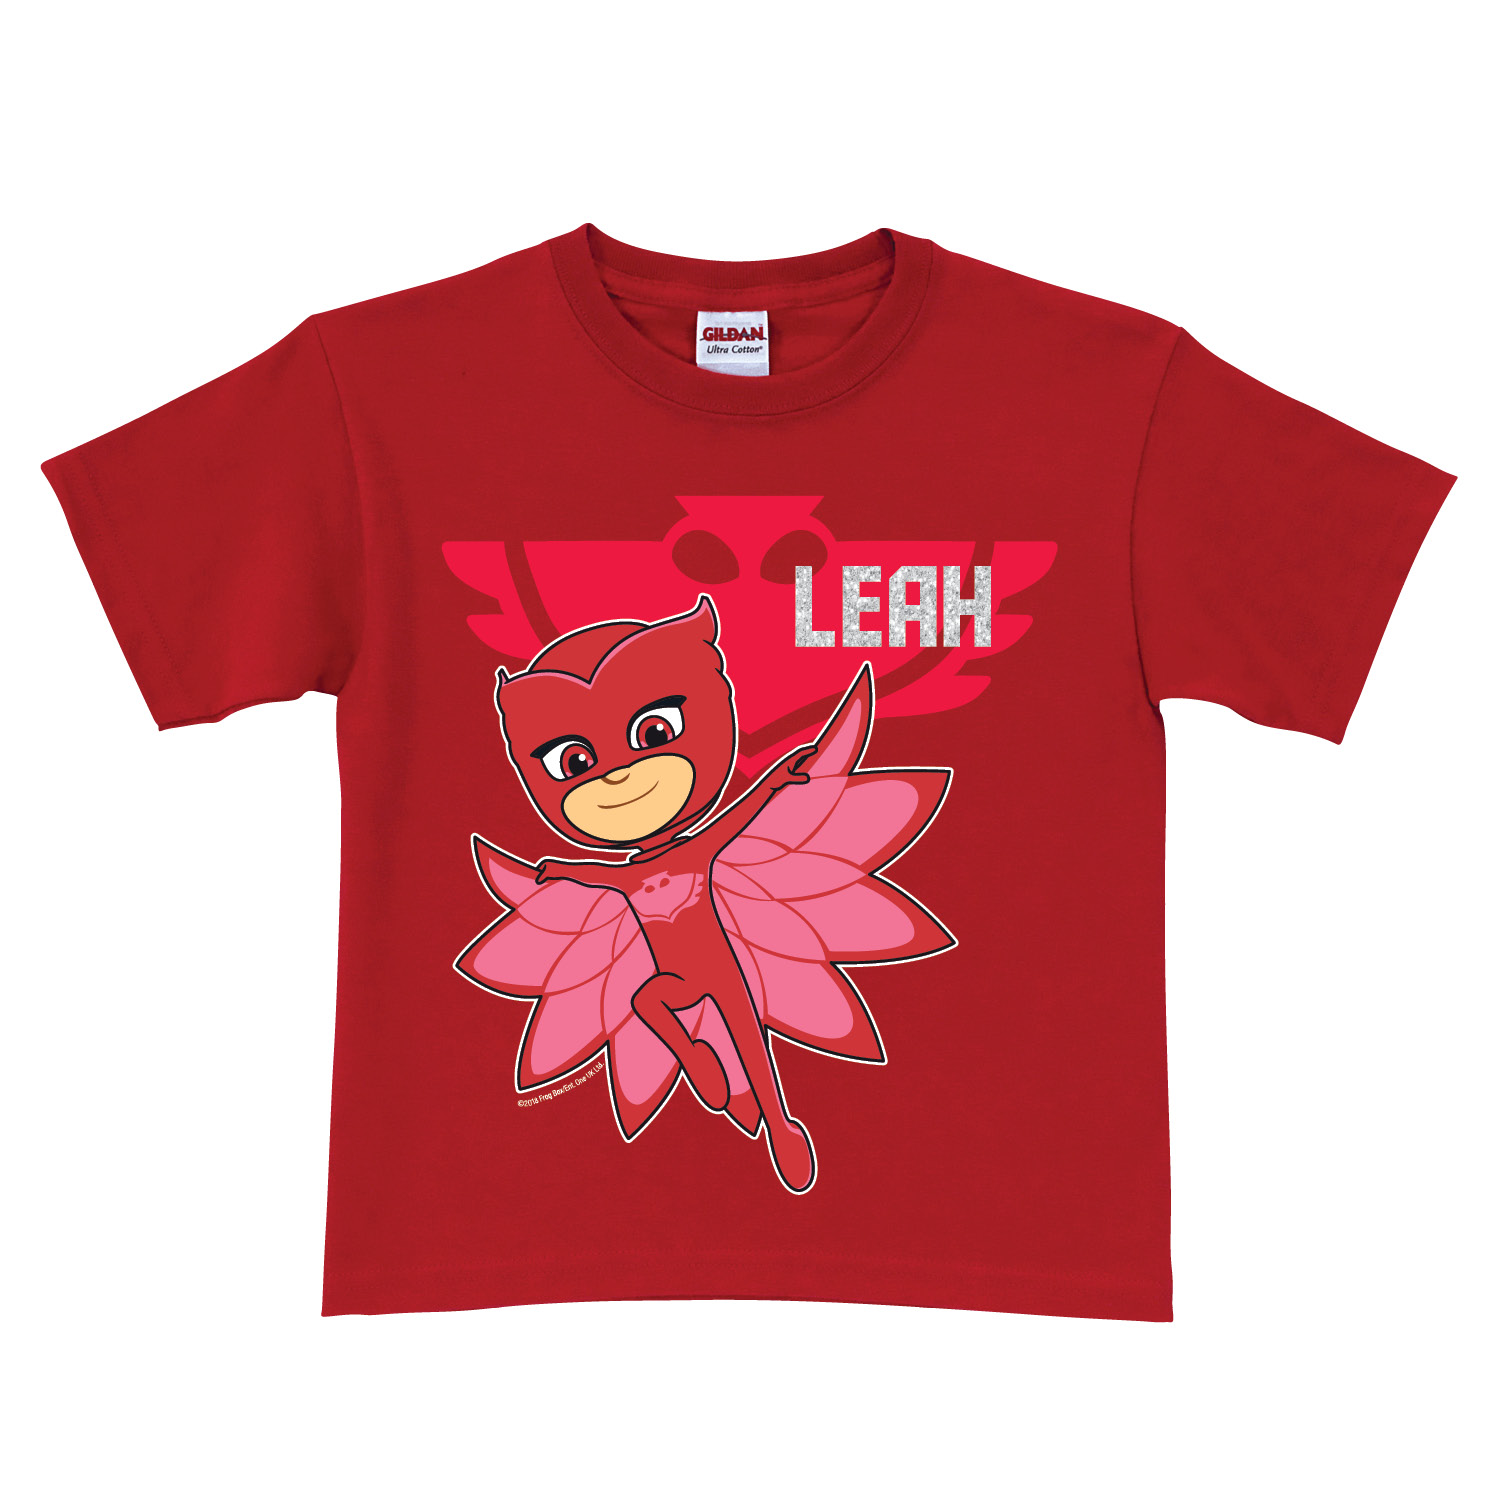 PJ Masks Owlette Red Toddler T-Shirt - 2T, 3T, 4T, 5/6T